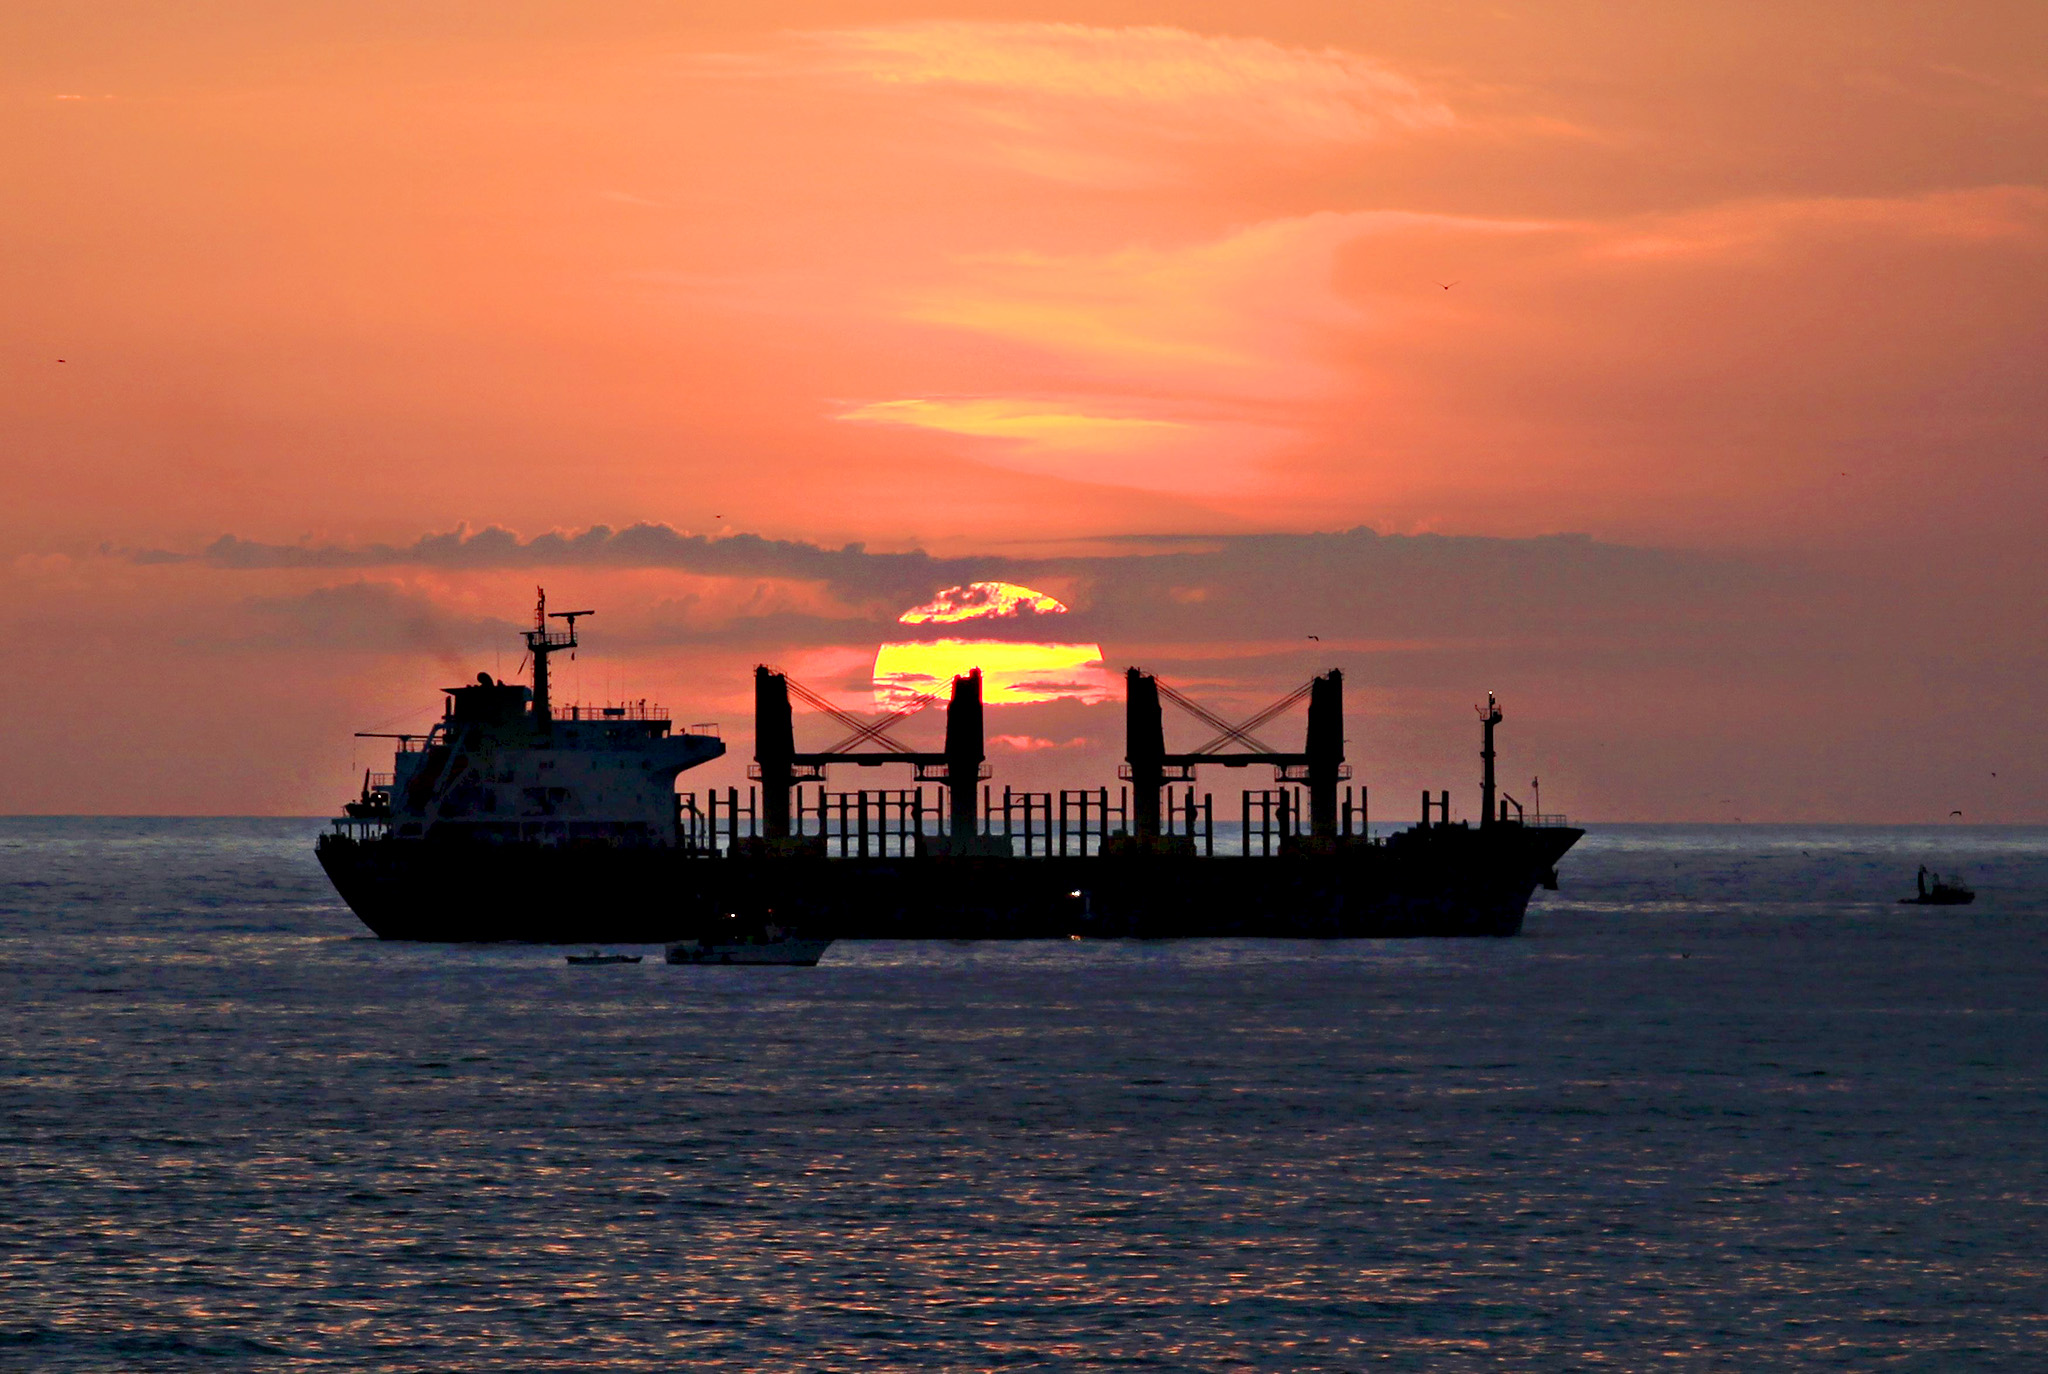 A freighter lies off the coast at sunrise in Algiers, Algeria June 25, 2015.